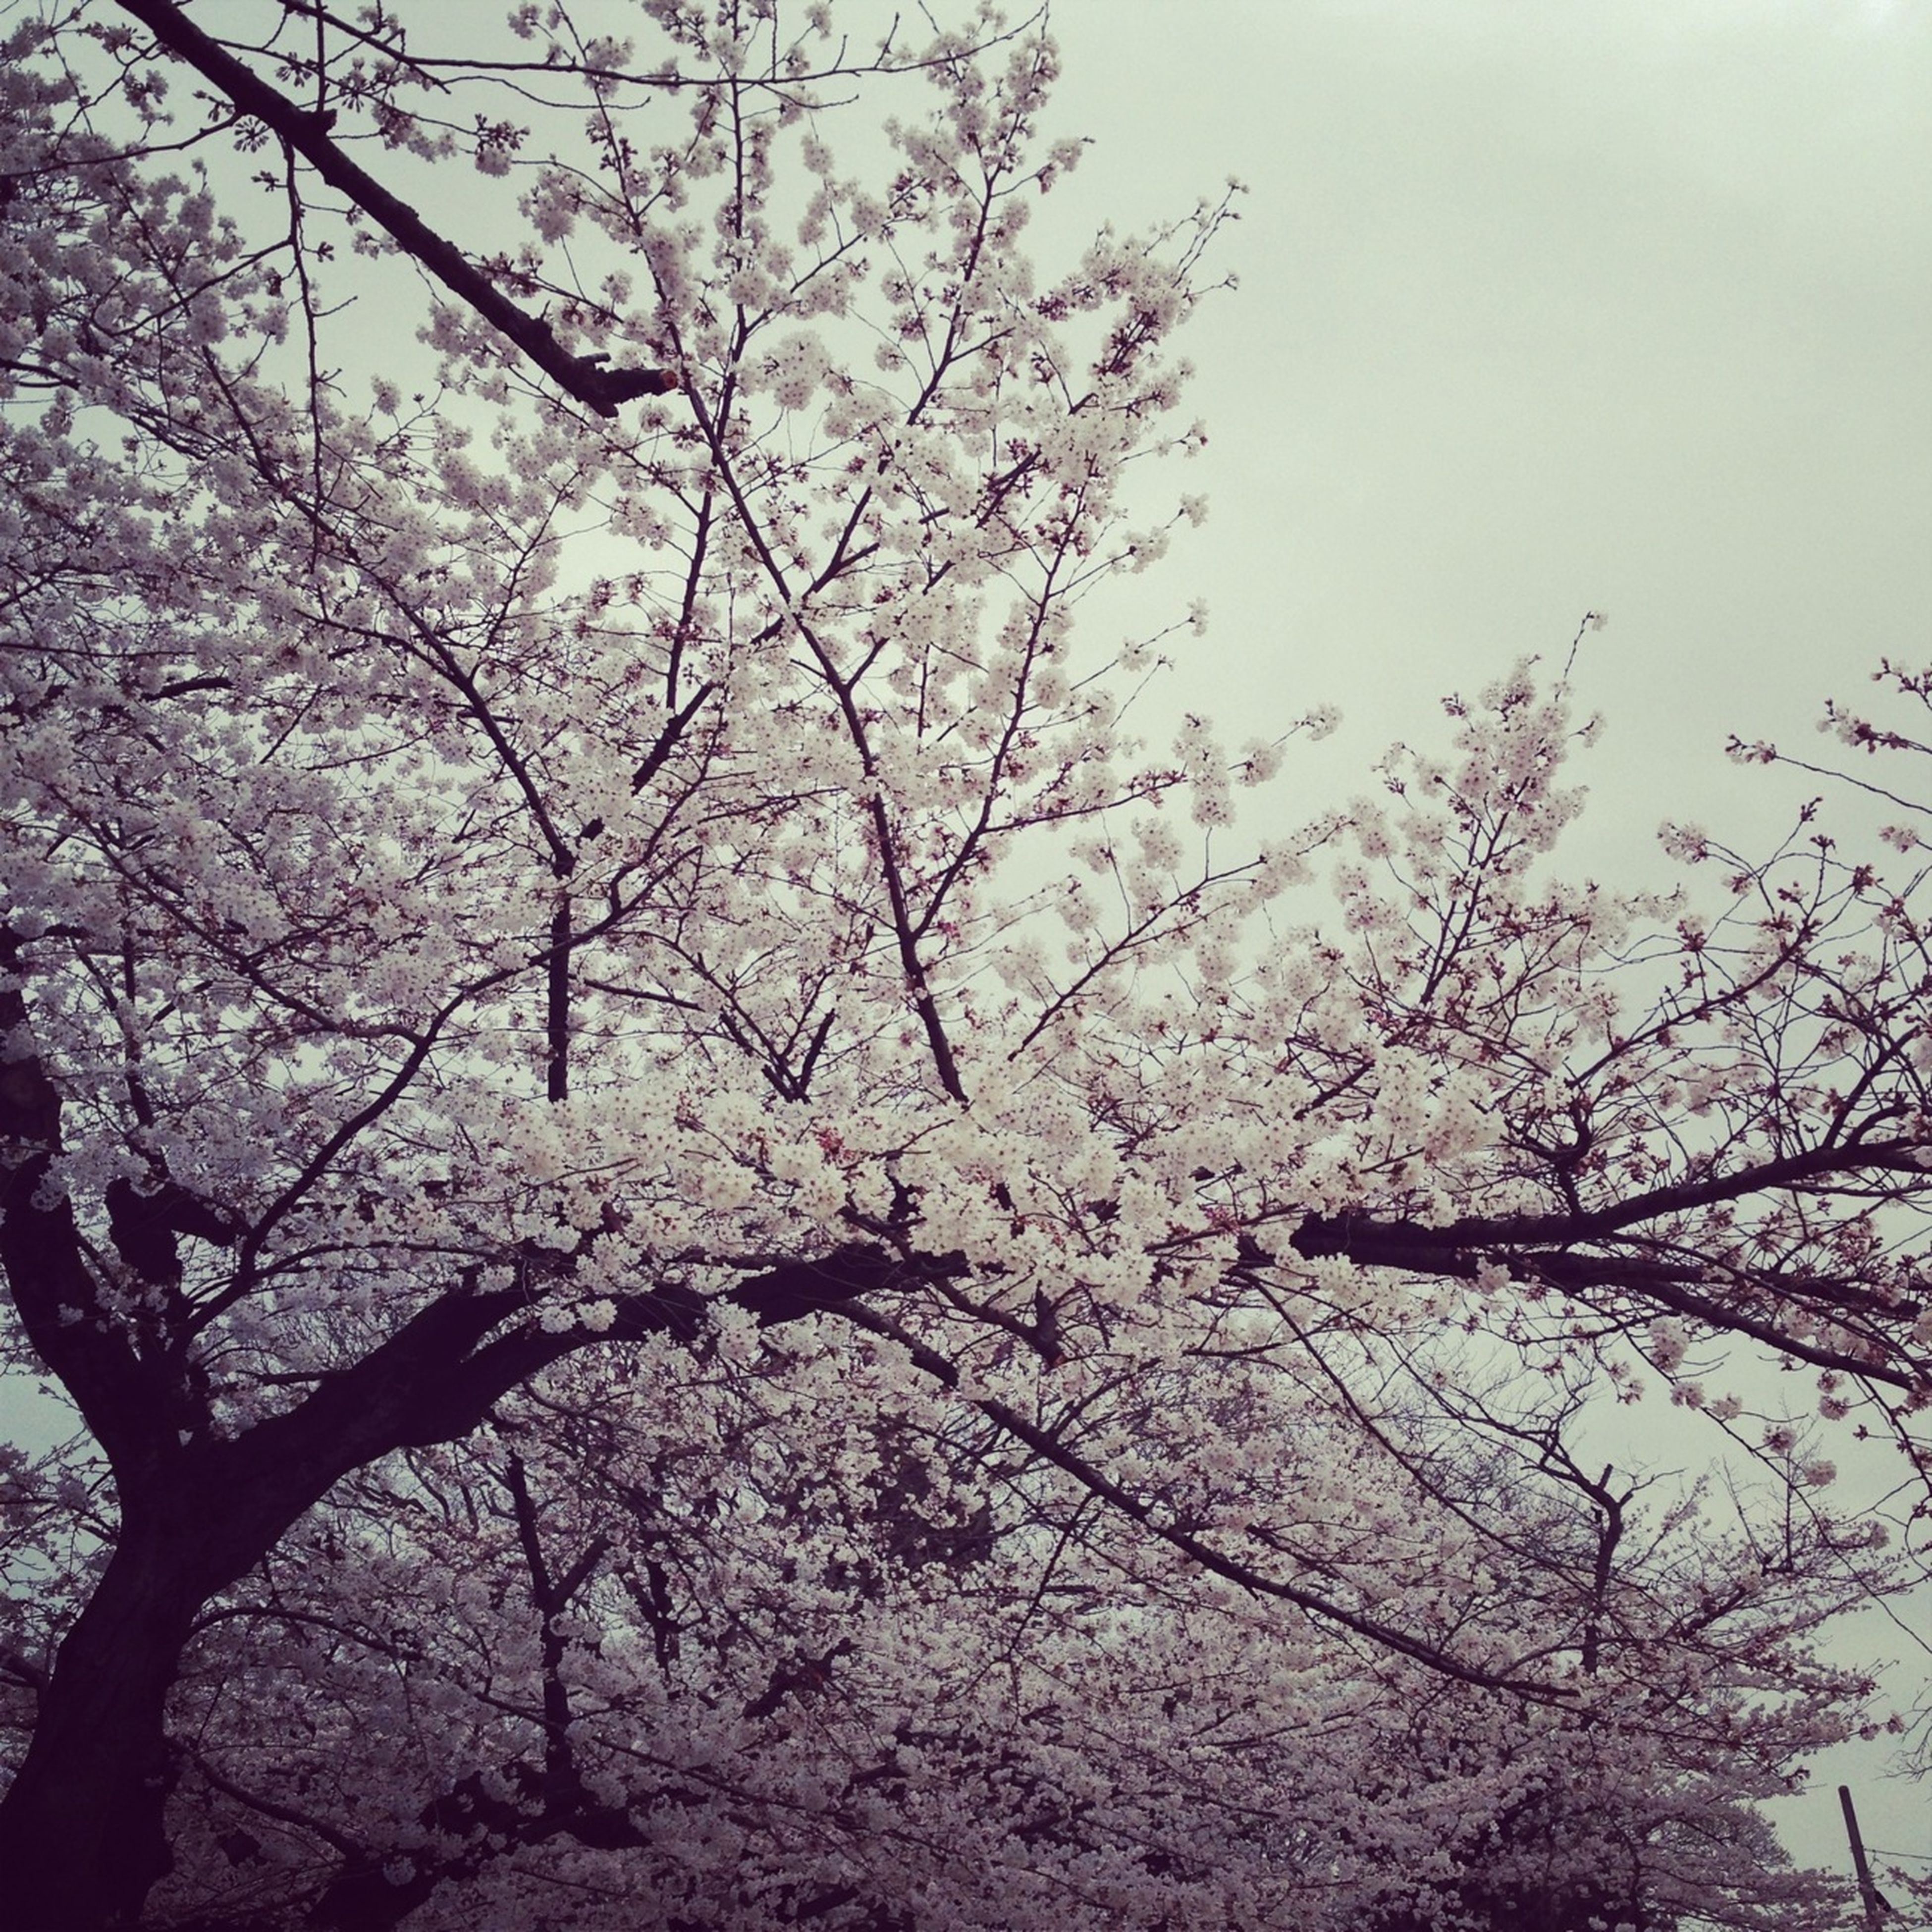 tree, branch, low angle view, growth, beauty in nature, nature, sky, flower, bare tree, tranquility, cherry blossom, cherry tree, scenics, blossom, outdoors, clear sky, day, freshness, no people, tranquil scene